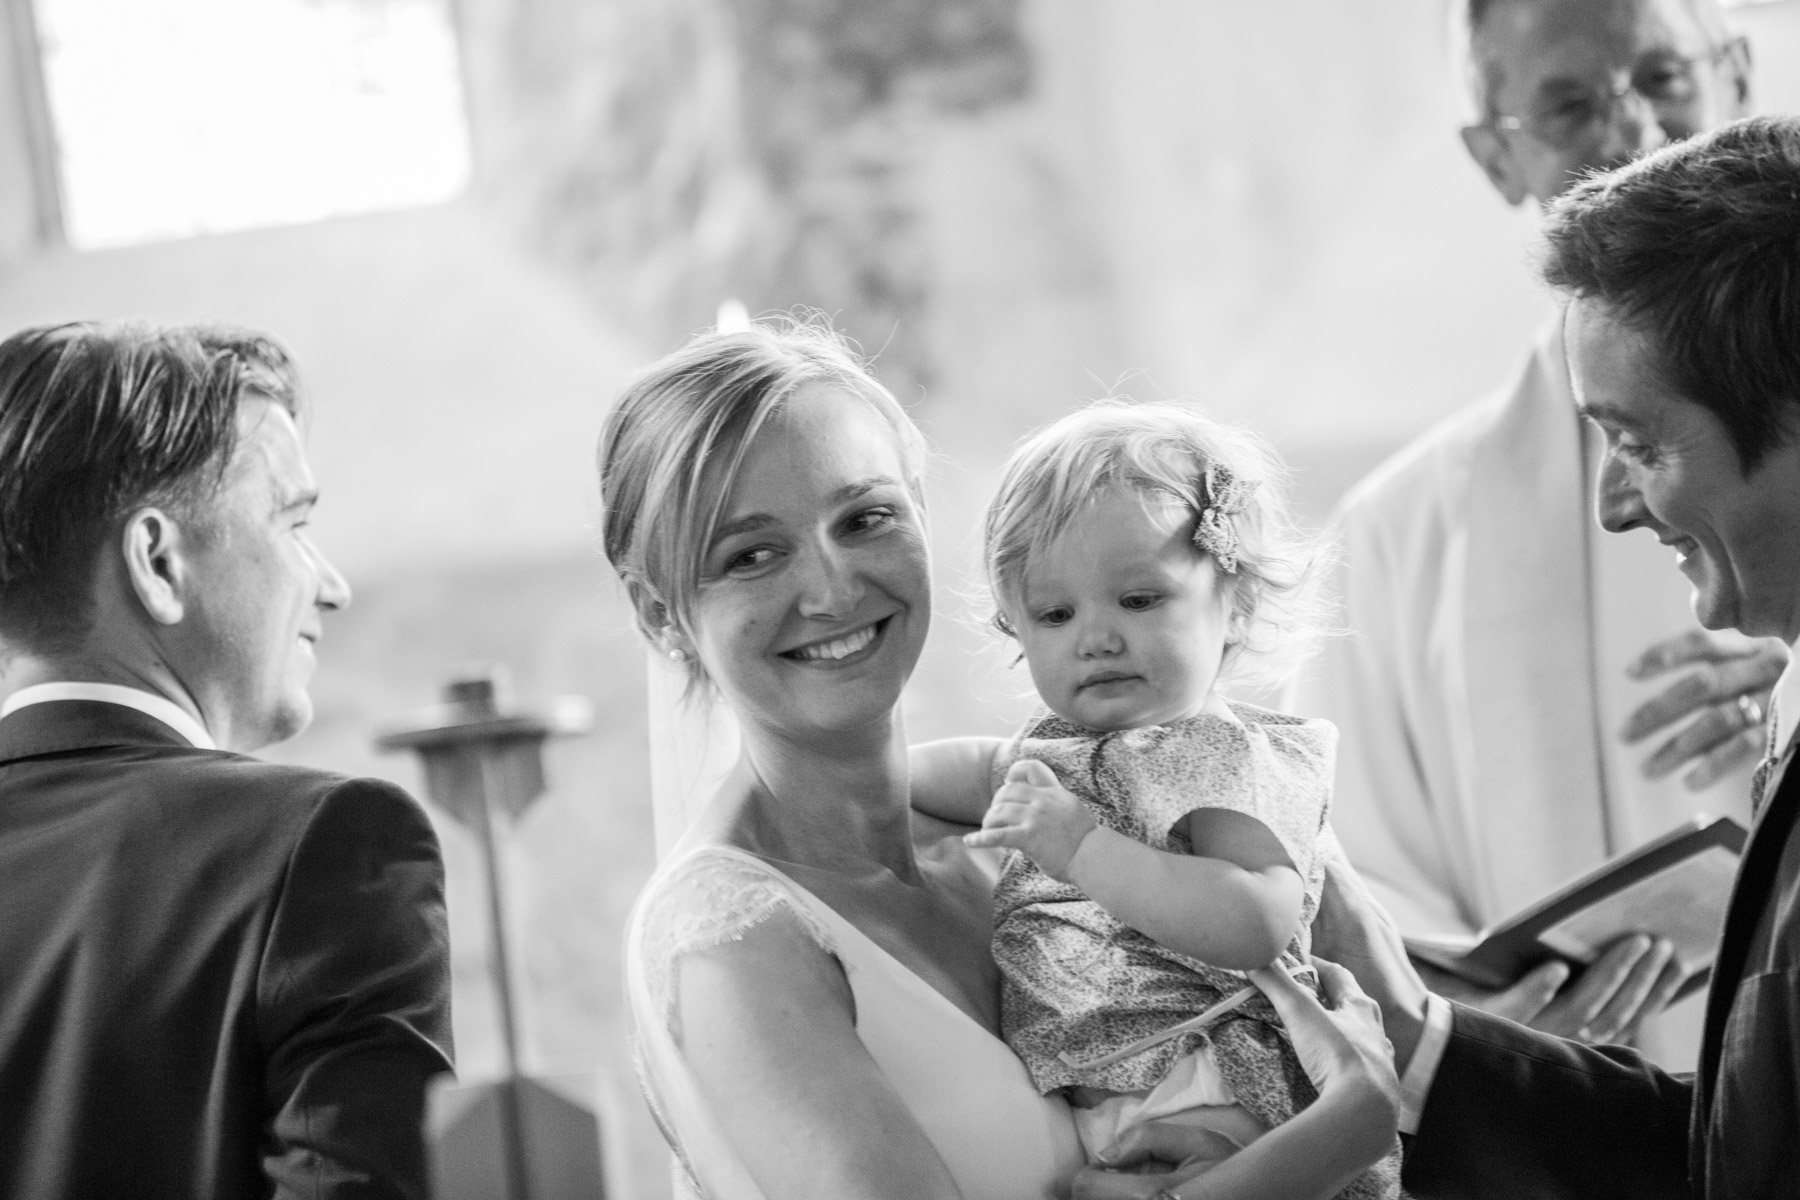 London Documentary Wedding Photographer - Richard Murgatroyd Photography